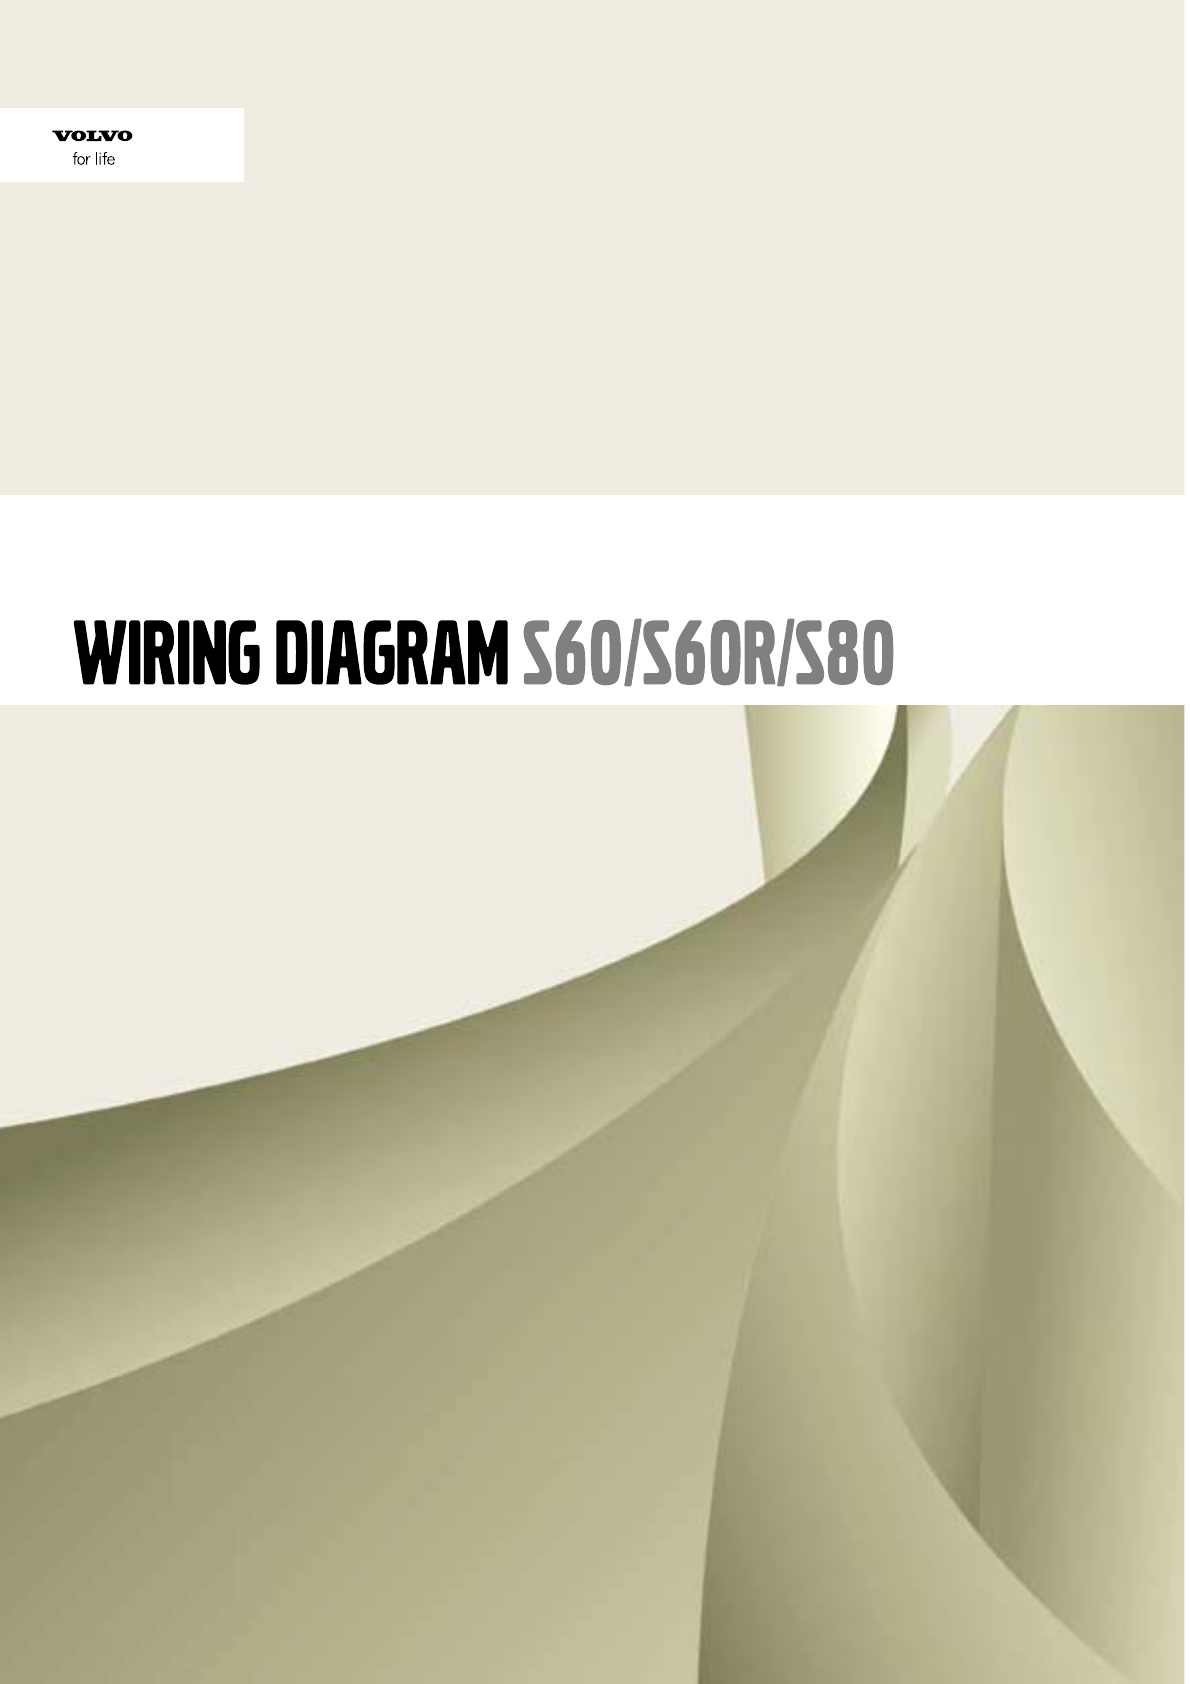 see our other volvo s60 manuals: